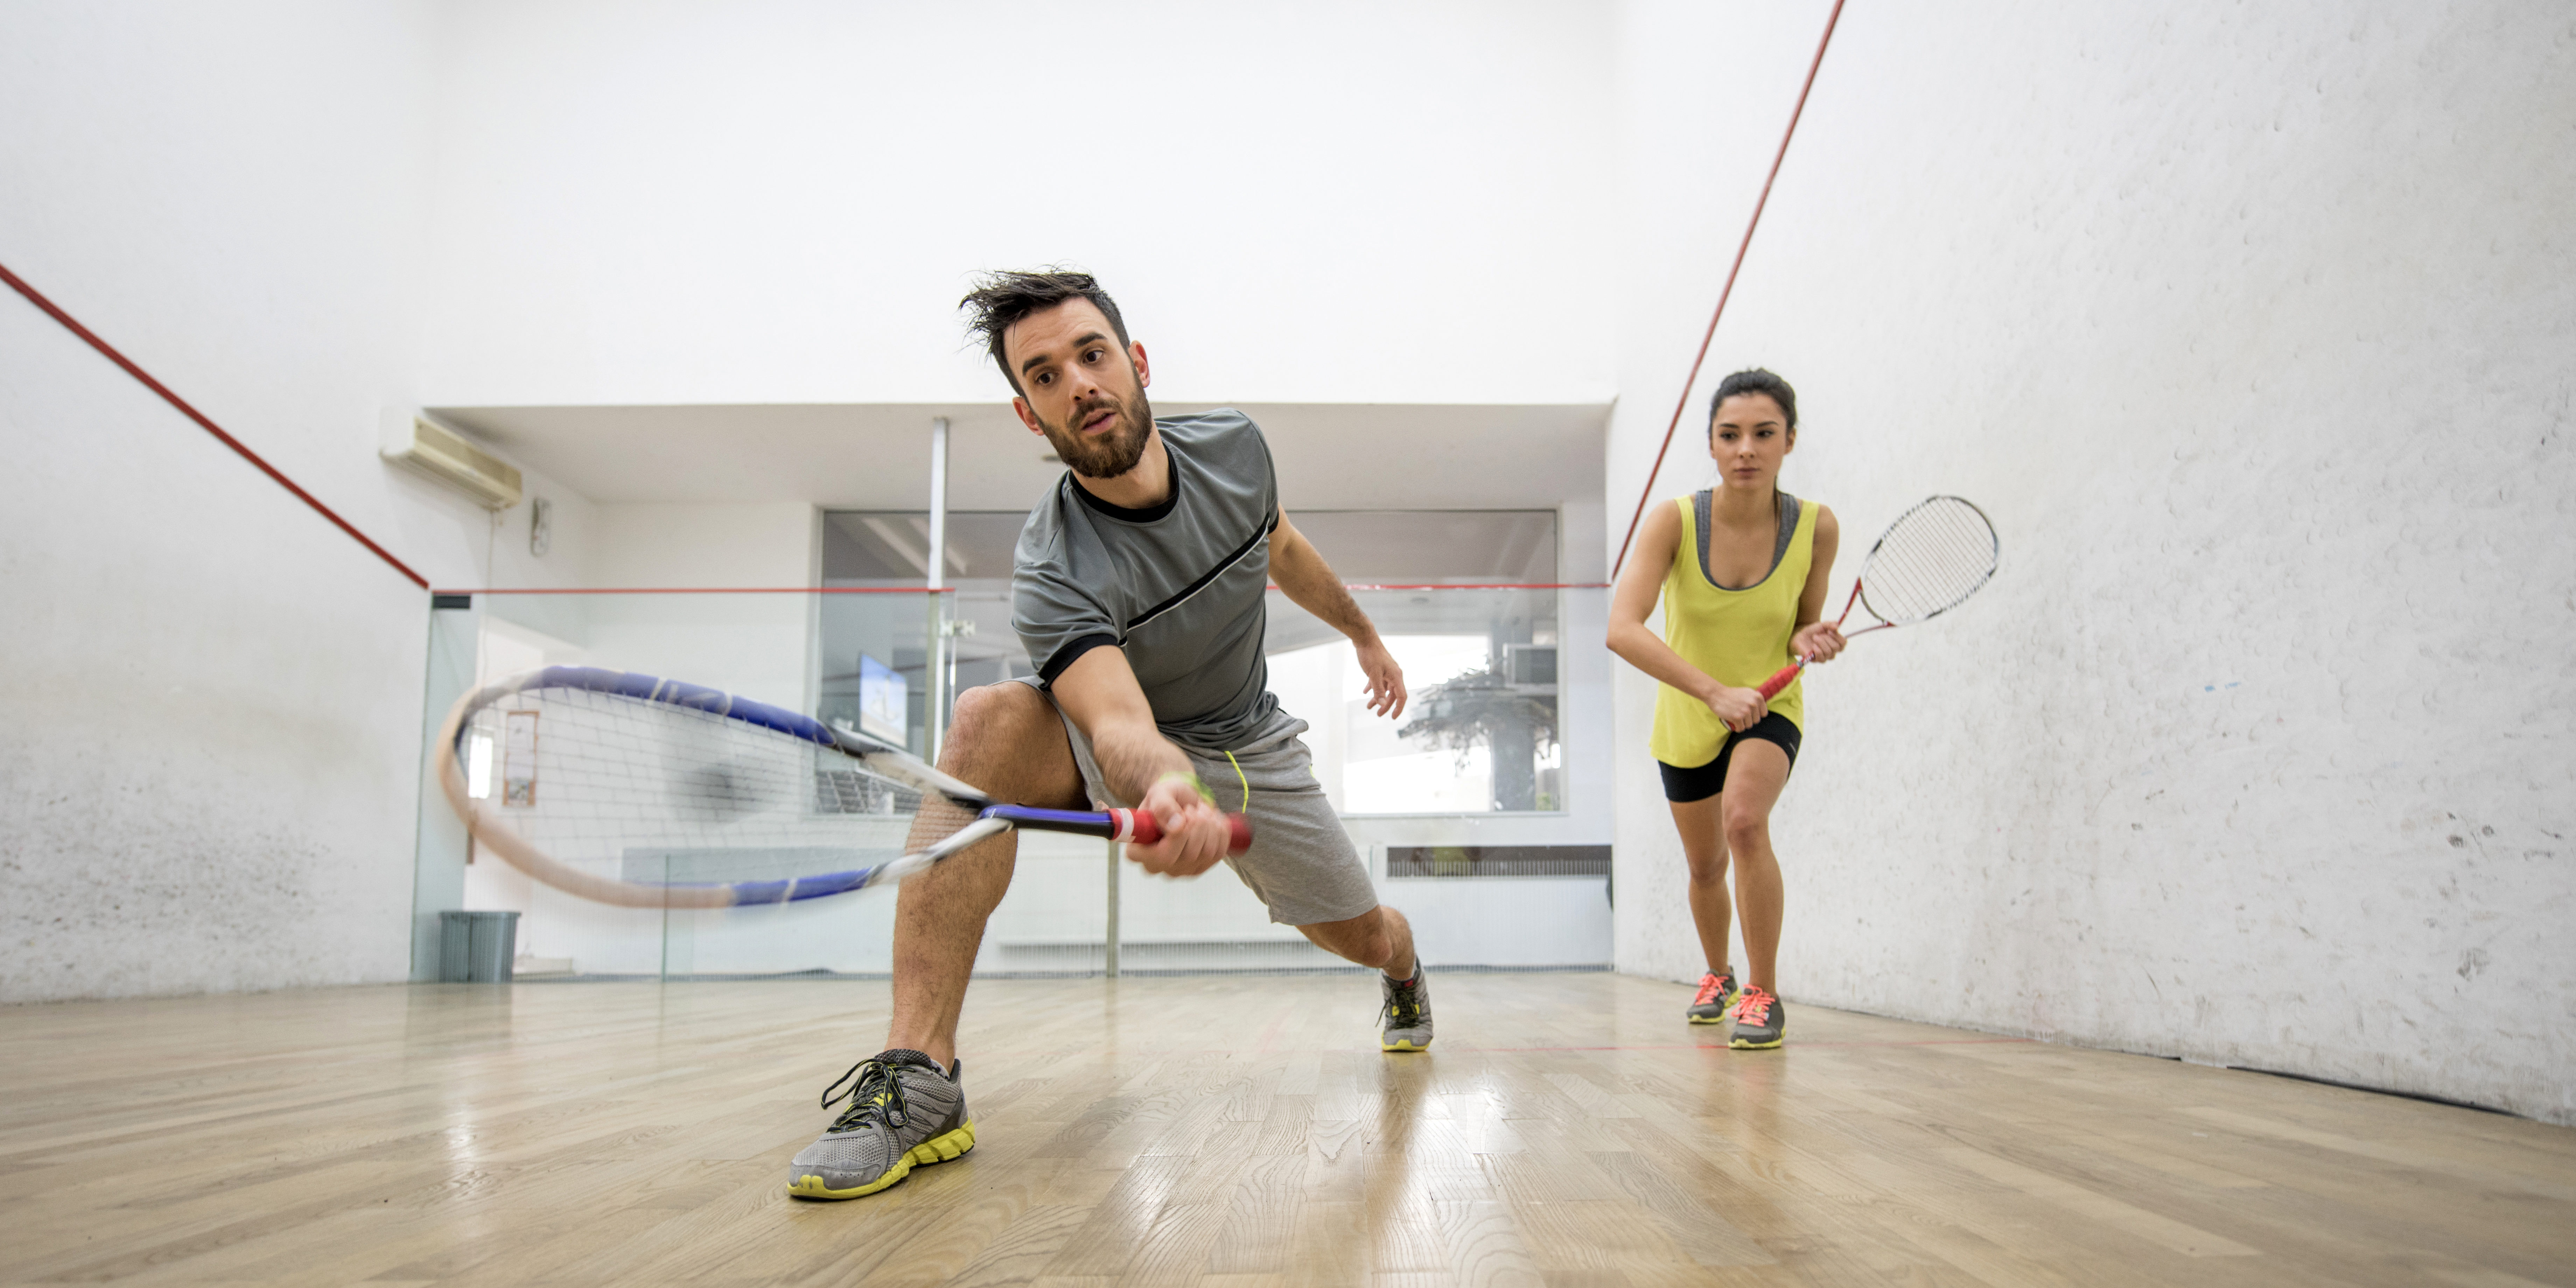 Below view of young man and woman playing squash.